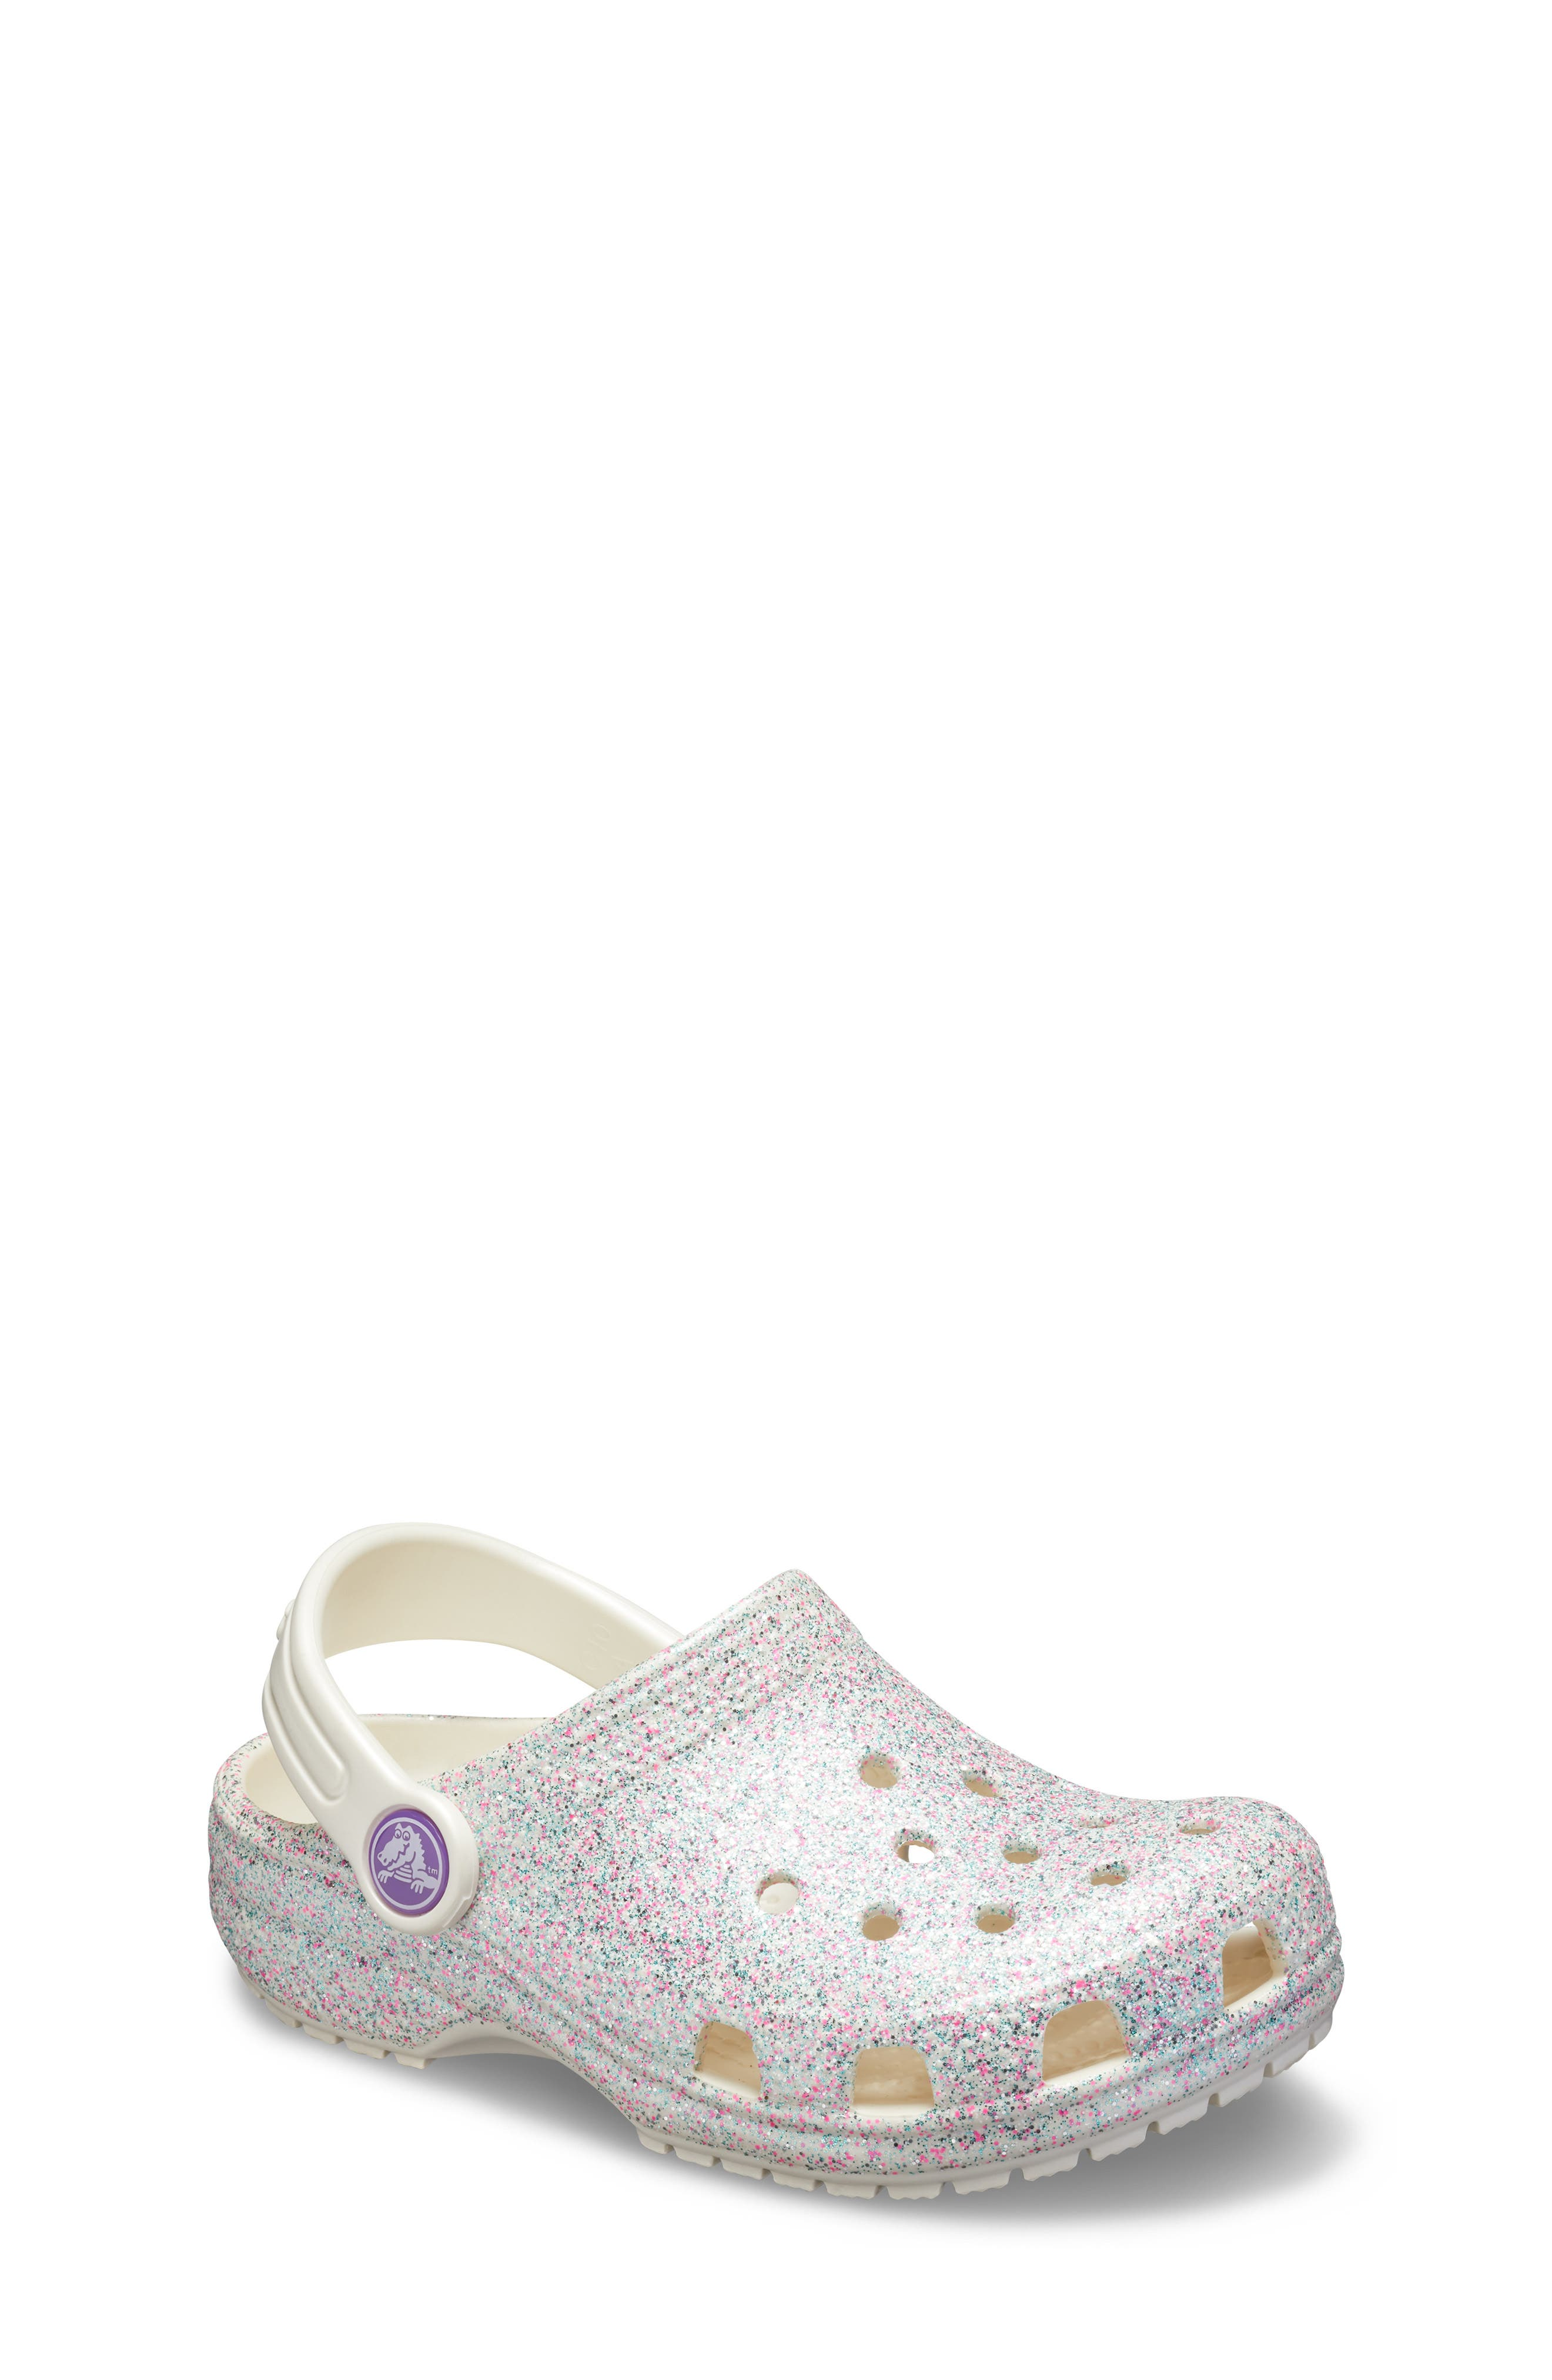 Little Girls' Clogs Shoes (Sizes 12.5-3)